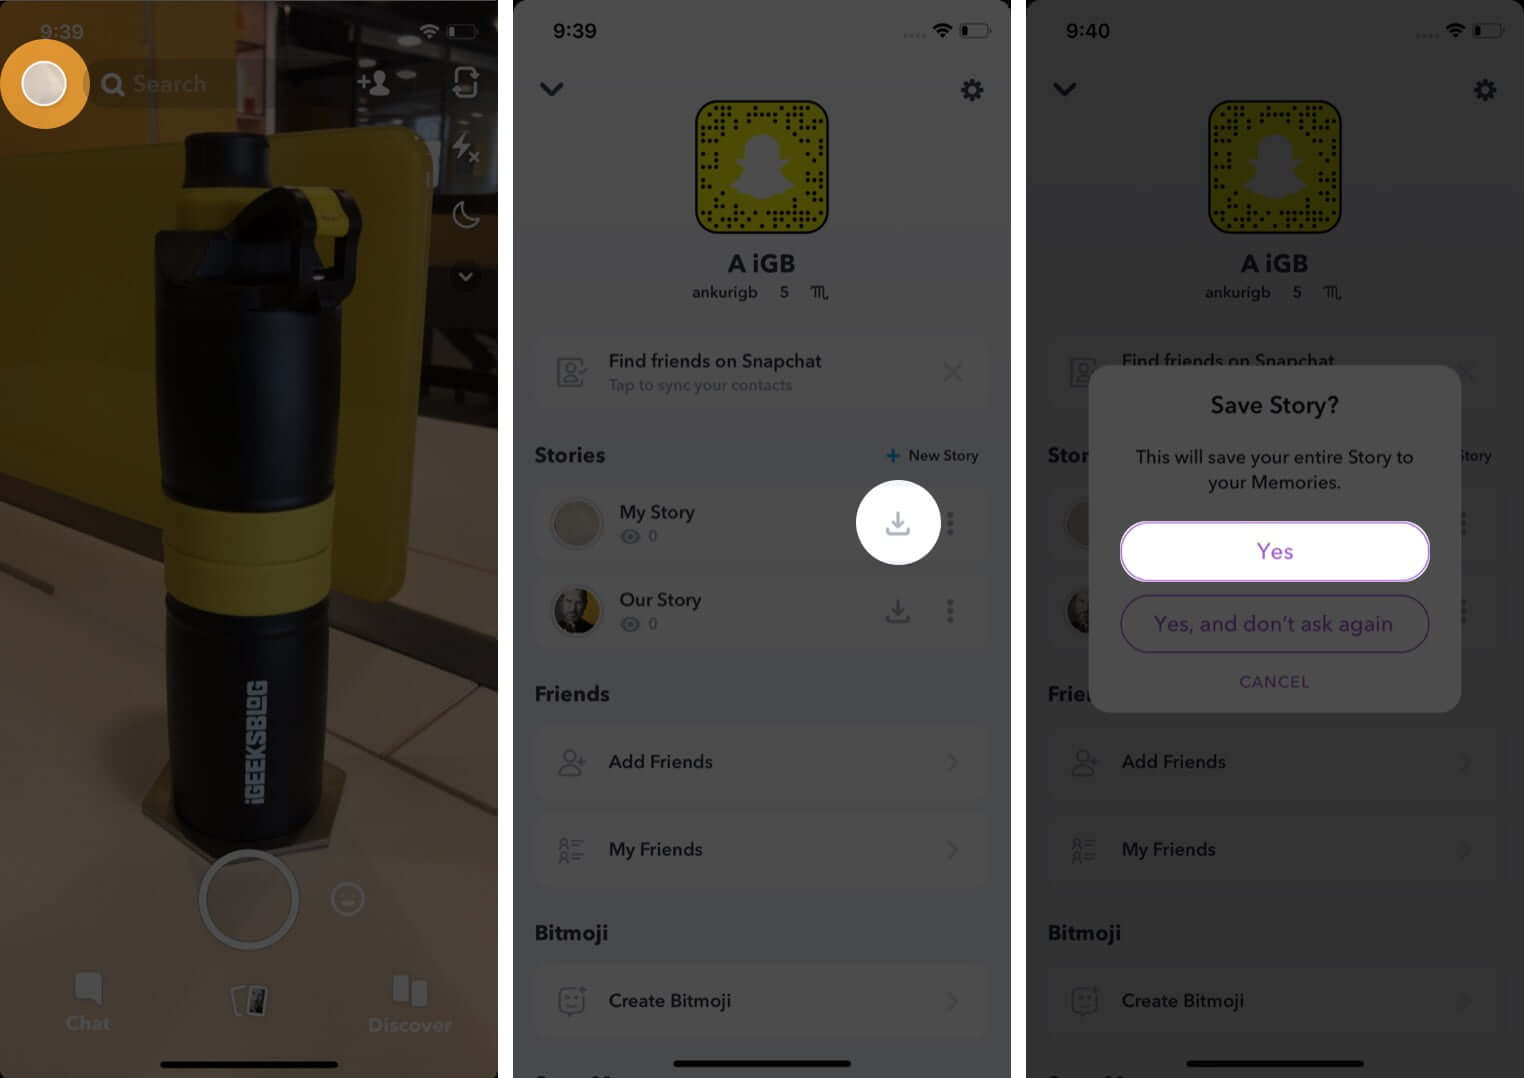 open snapchat tap on profile tap on save and then tap yes to save on iphone